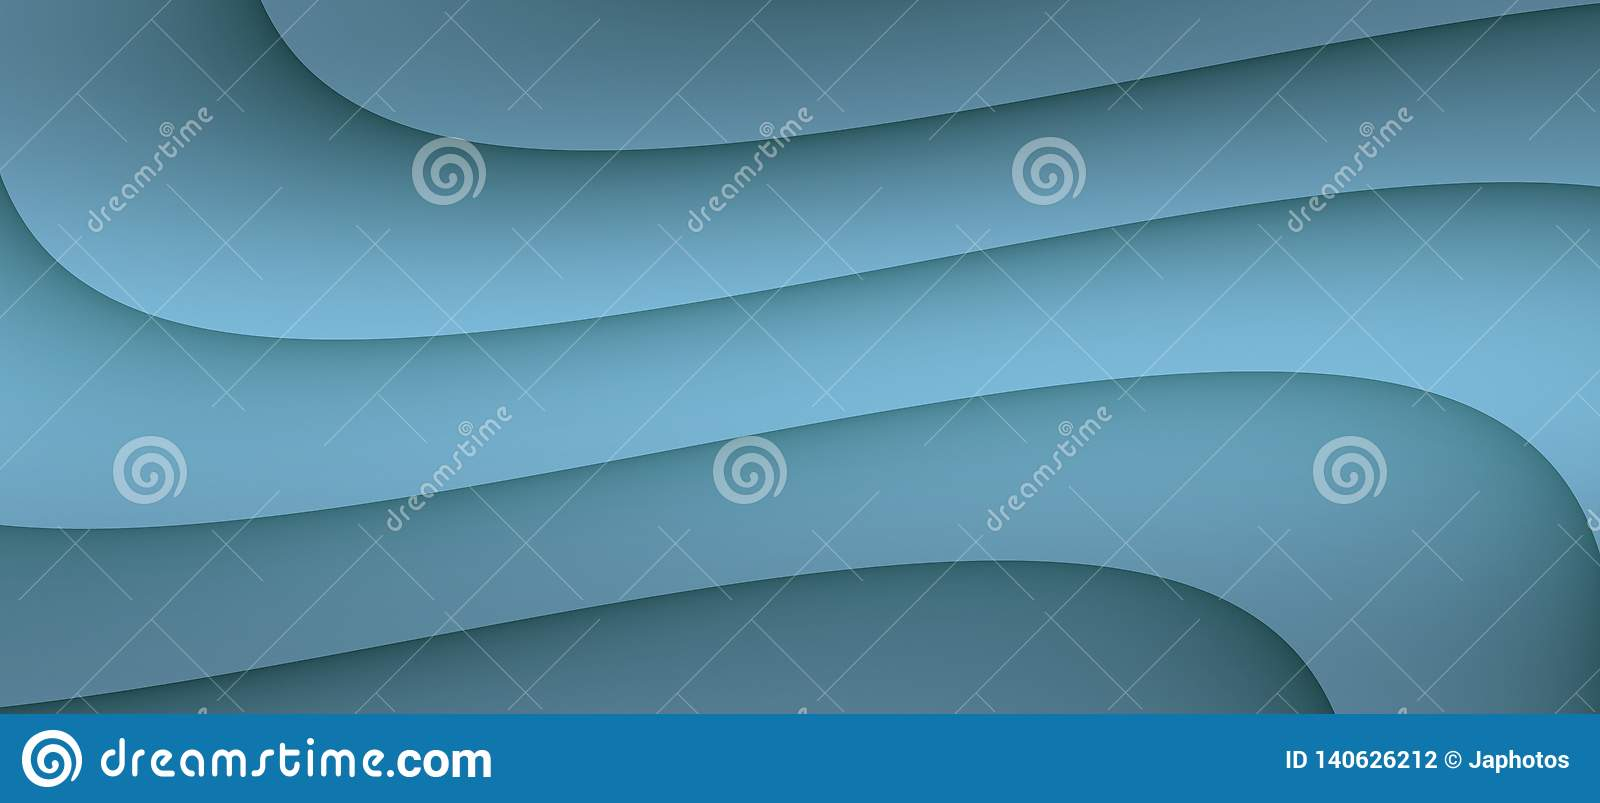 High resolution smooth flowing curves abstract background illustration in shades of grayish steel blue